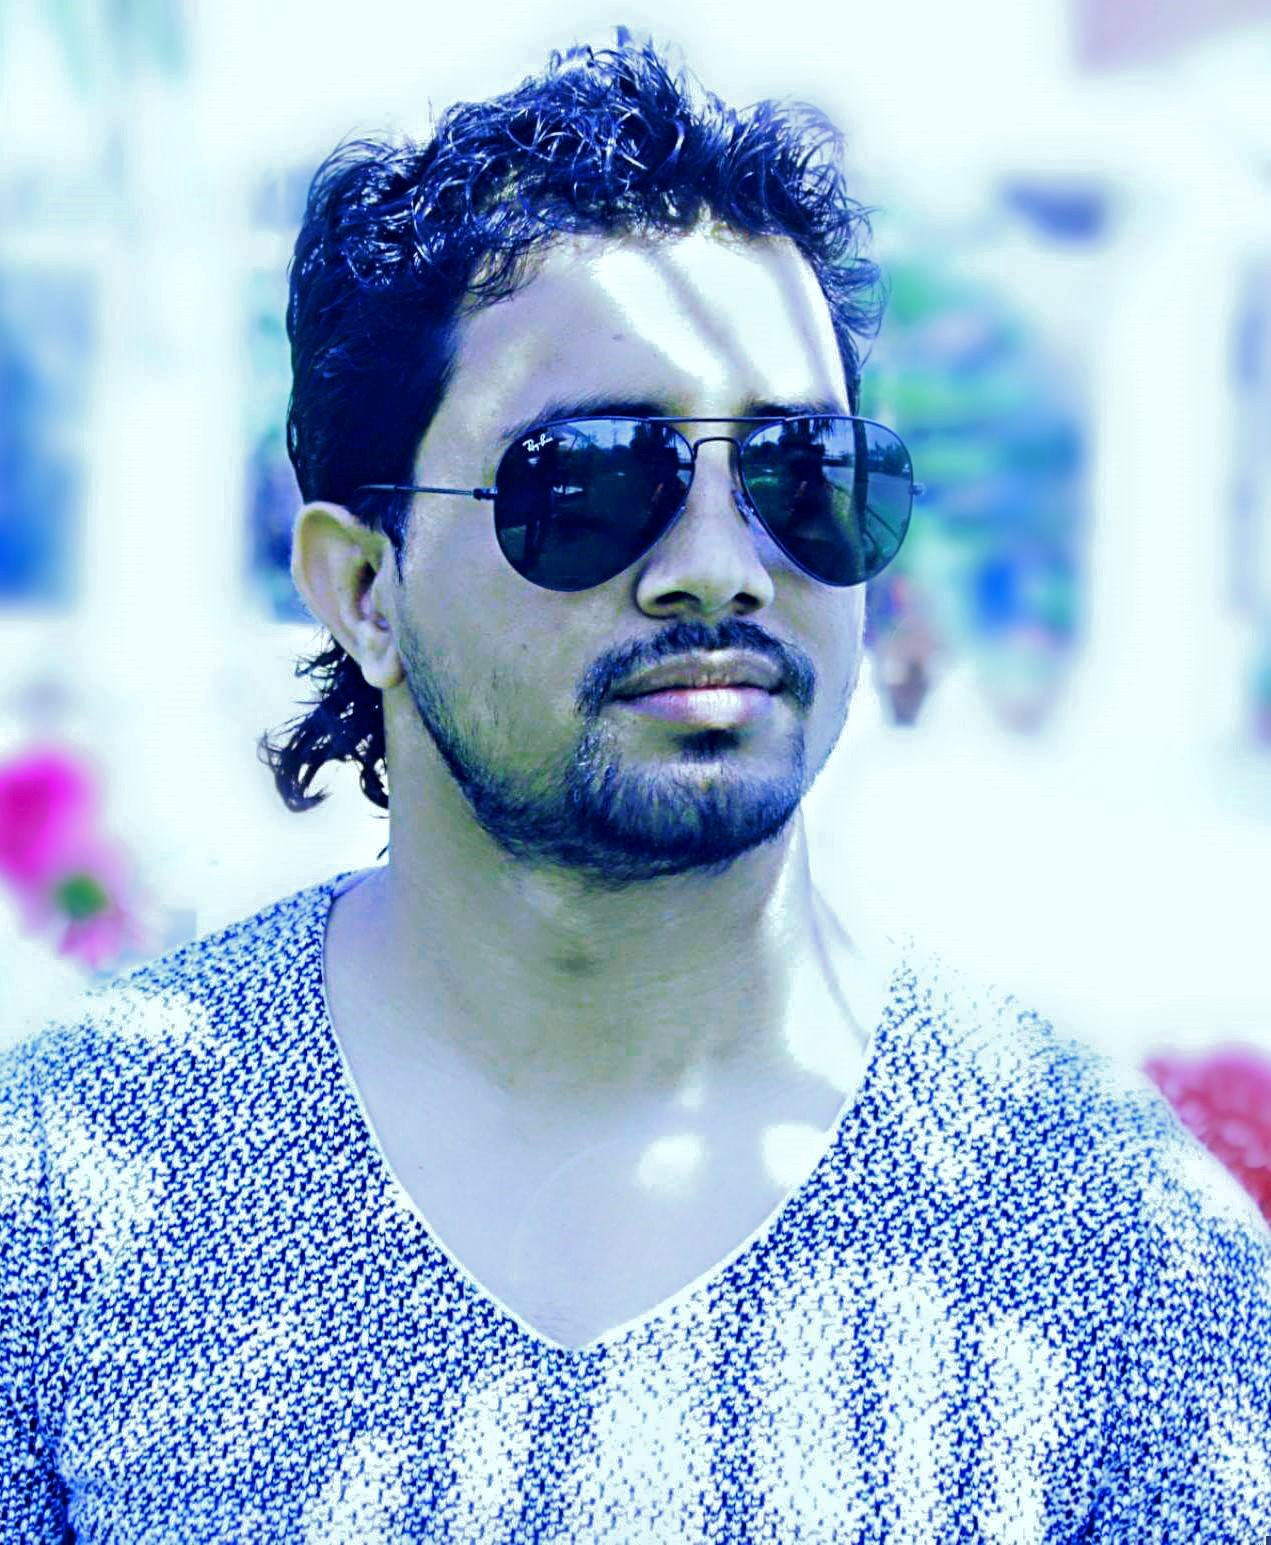 14500337_1241383729259050_6071983315297339446_o Music is my life and passion, By Praveen Bhandari